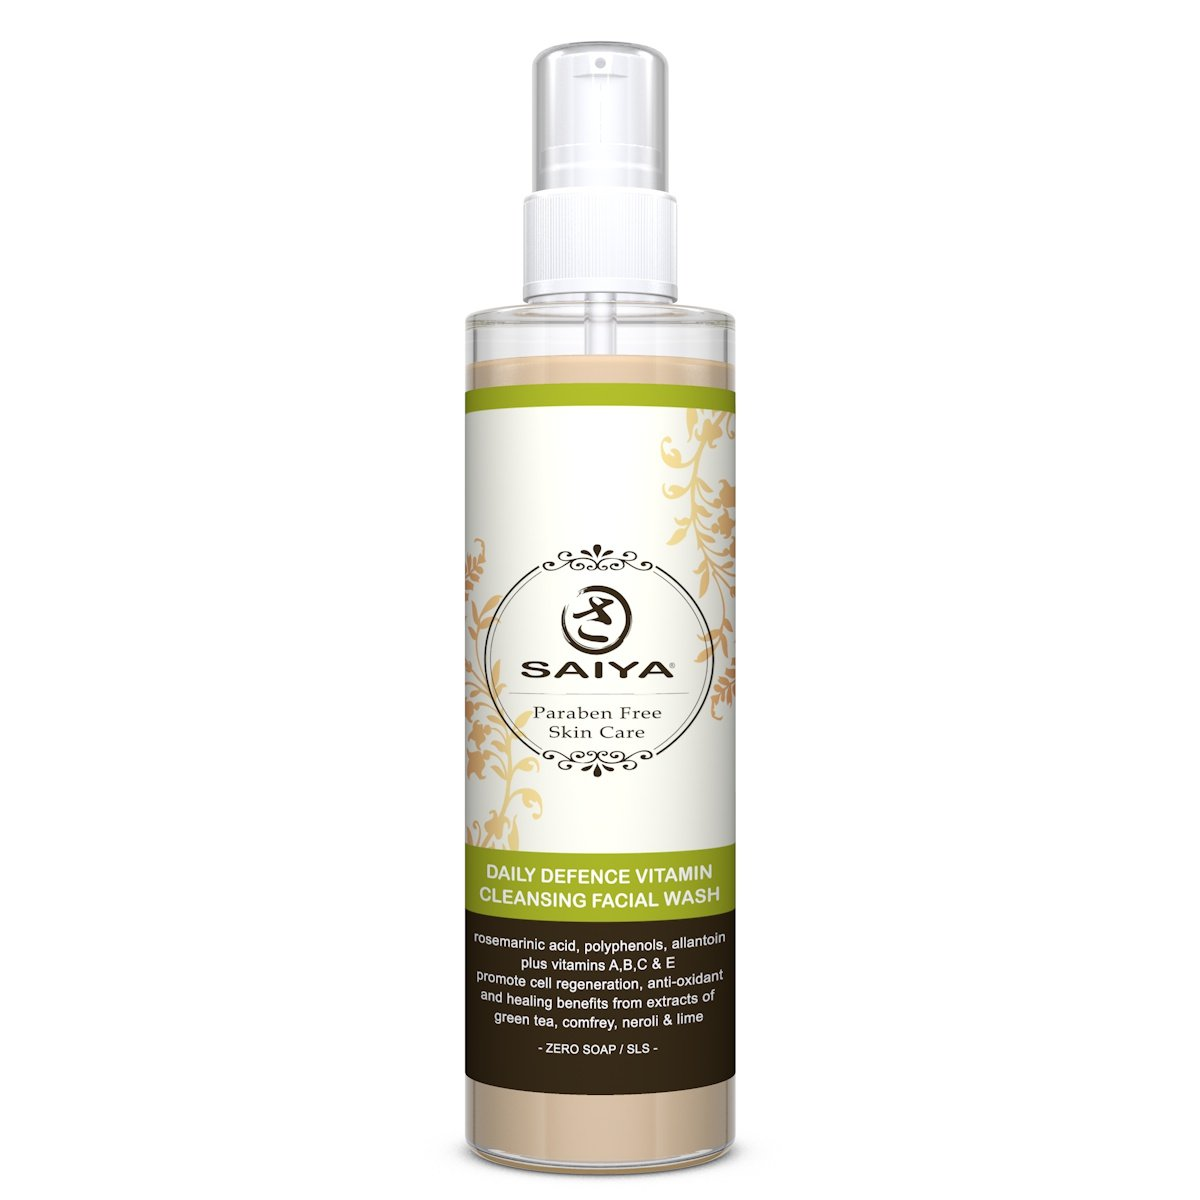 Deep Cleansing Facial Wash- All Natural Mild Green Tea-Best Natural Daily Care- Free Radical Protection-Gentle Skin Cleanser-Cell Regeneration-Effective Healing- Remove Makeup Everyday-Antioxidant 145ml Saiya